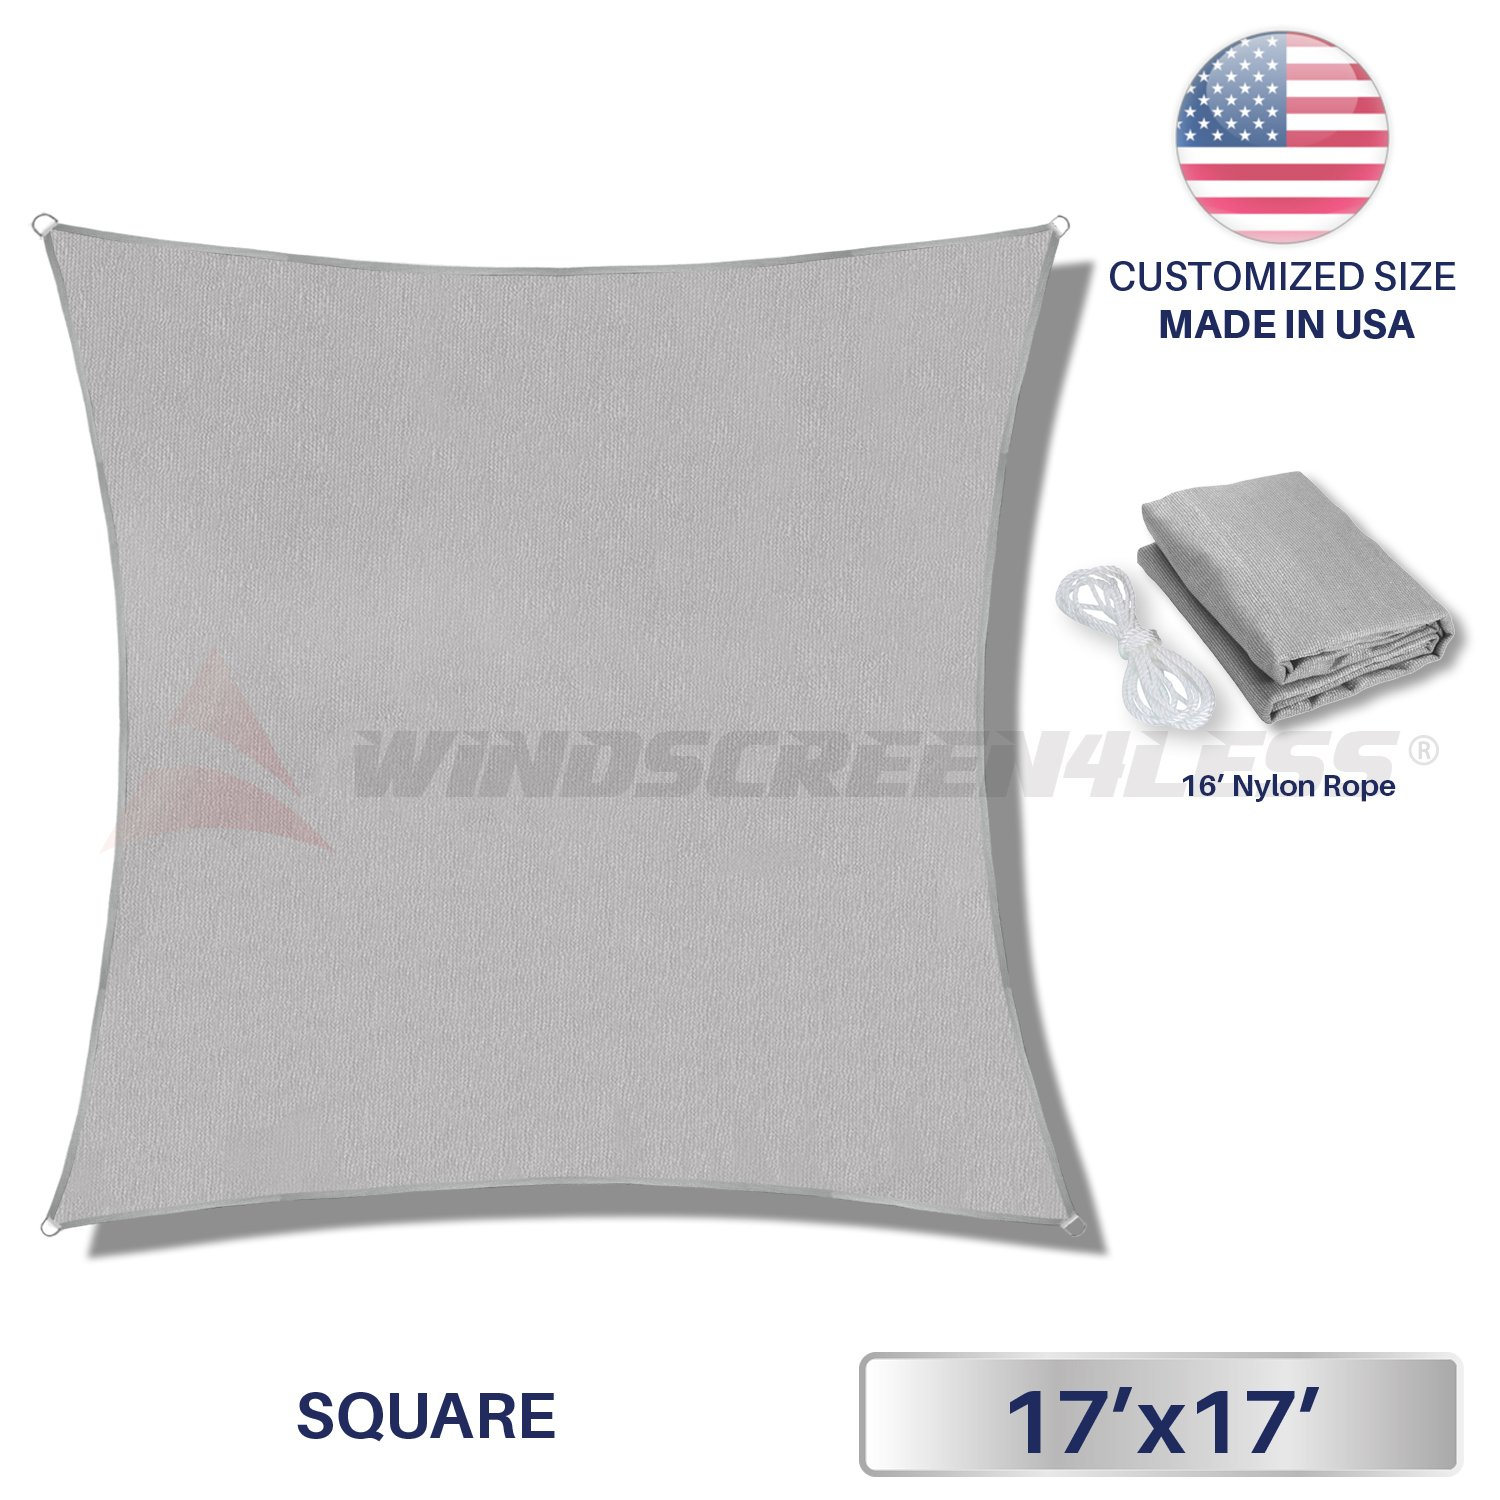 17' x 17' Sun Shade Sail UV Block Fabric Canopy in Light Grey Square for Patio Garden Customized Size 3 Year Limited Warranty